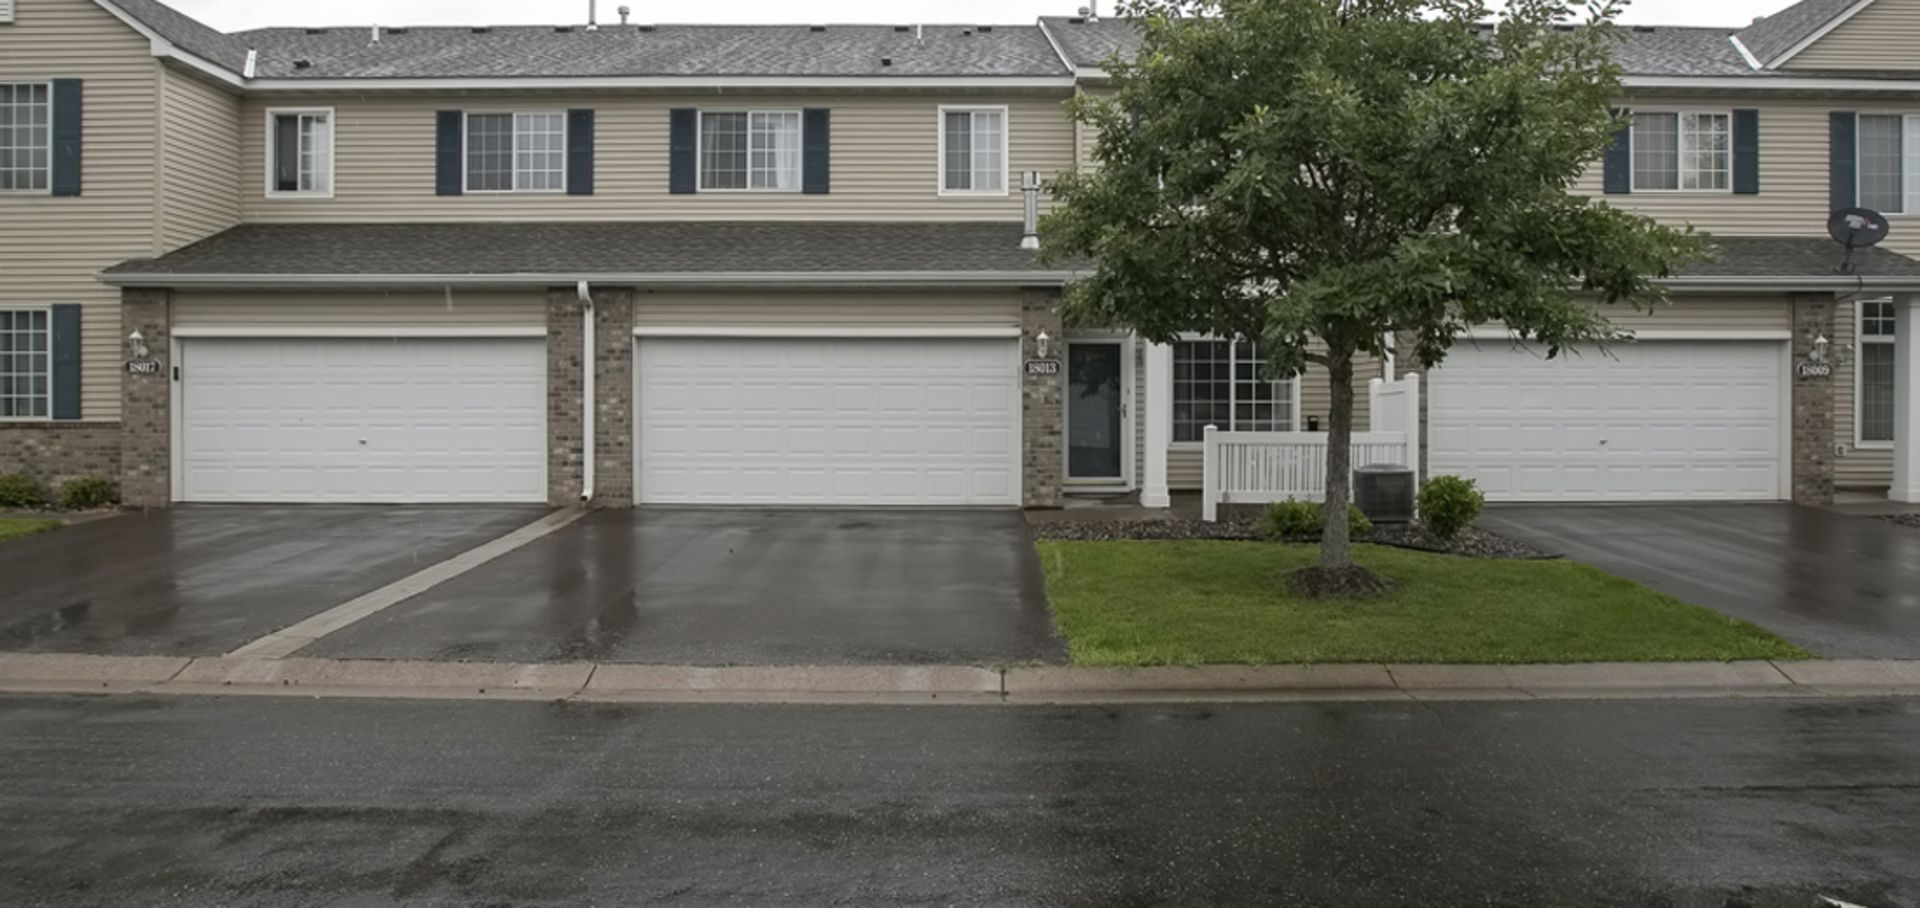 Classy & Modern Townhouse in Maple Grove